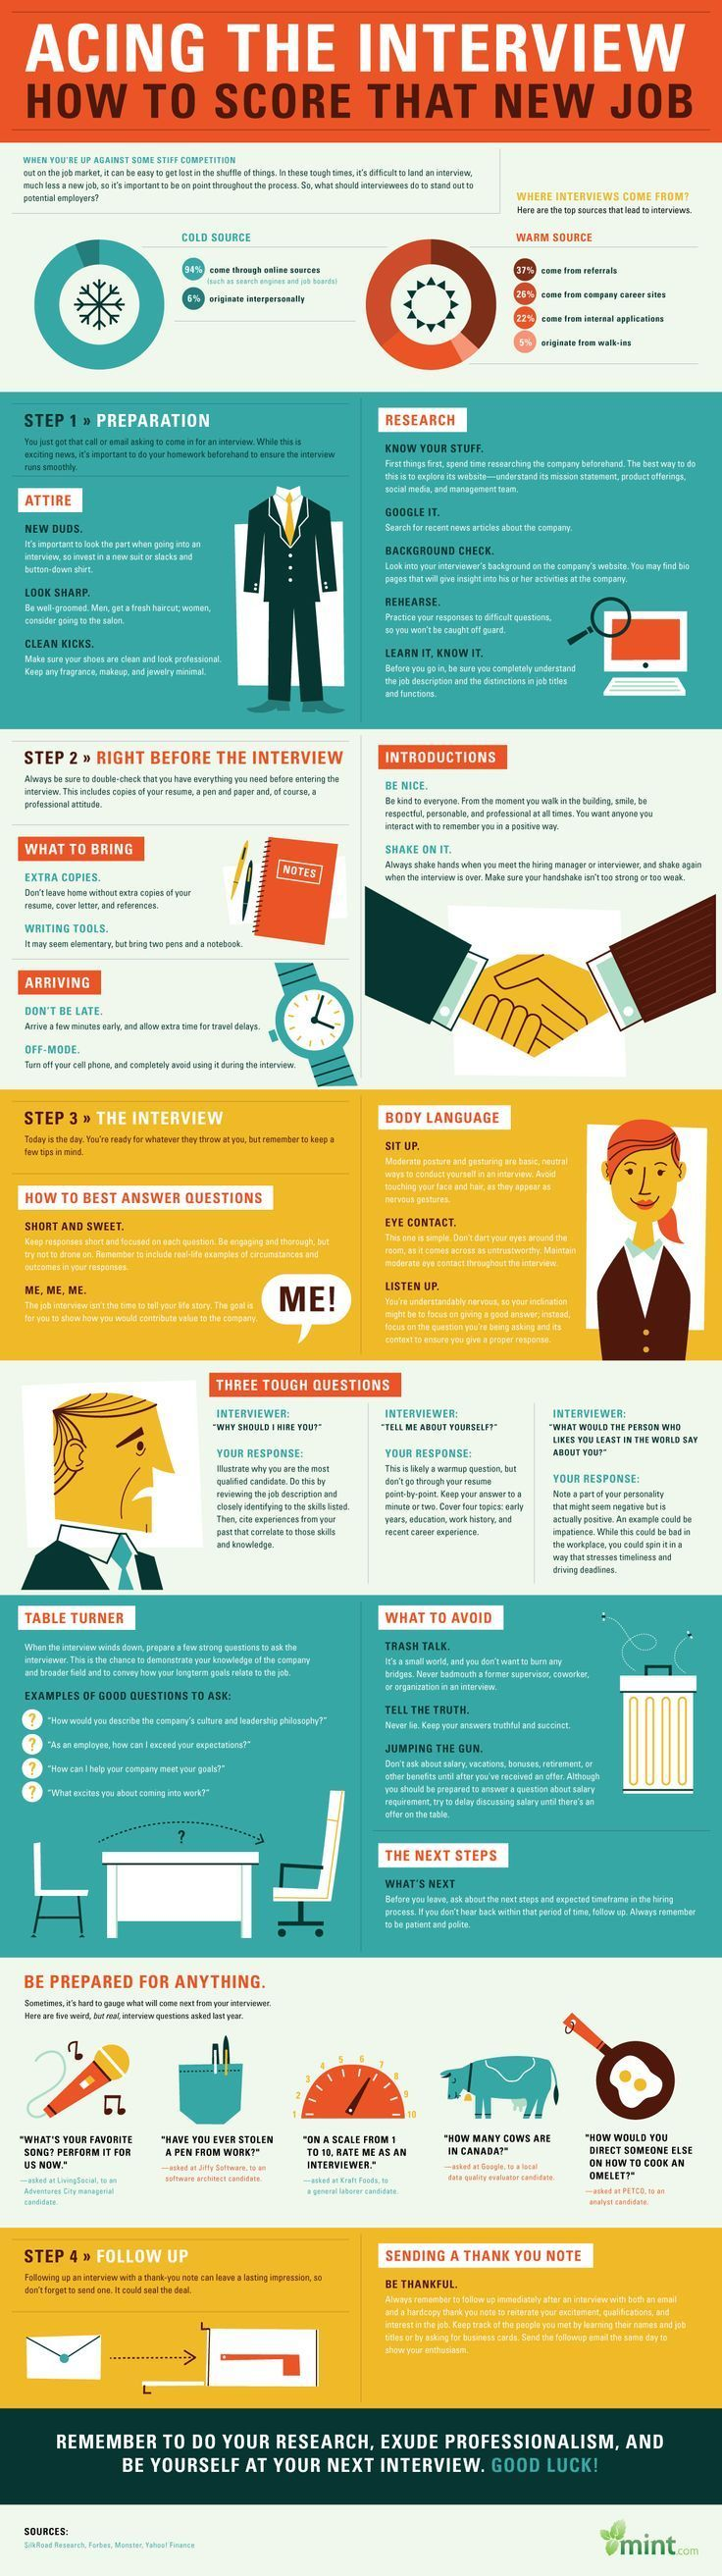 acing the interview how to score that new job jobs leadership acing the interview how to score that new job